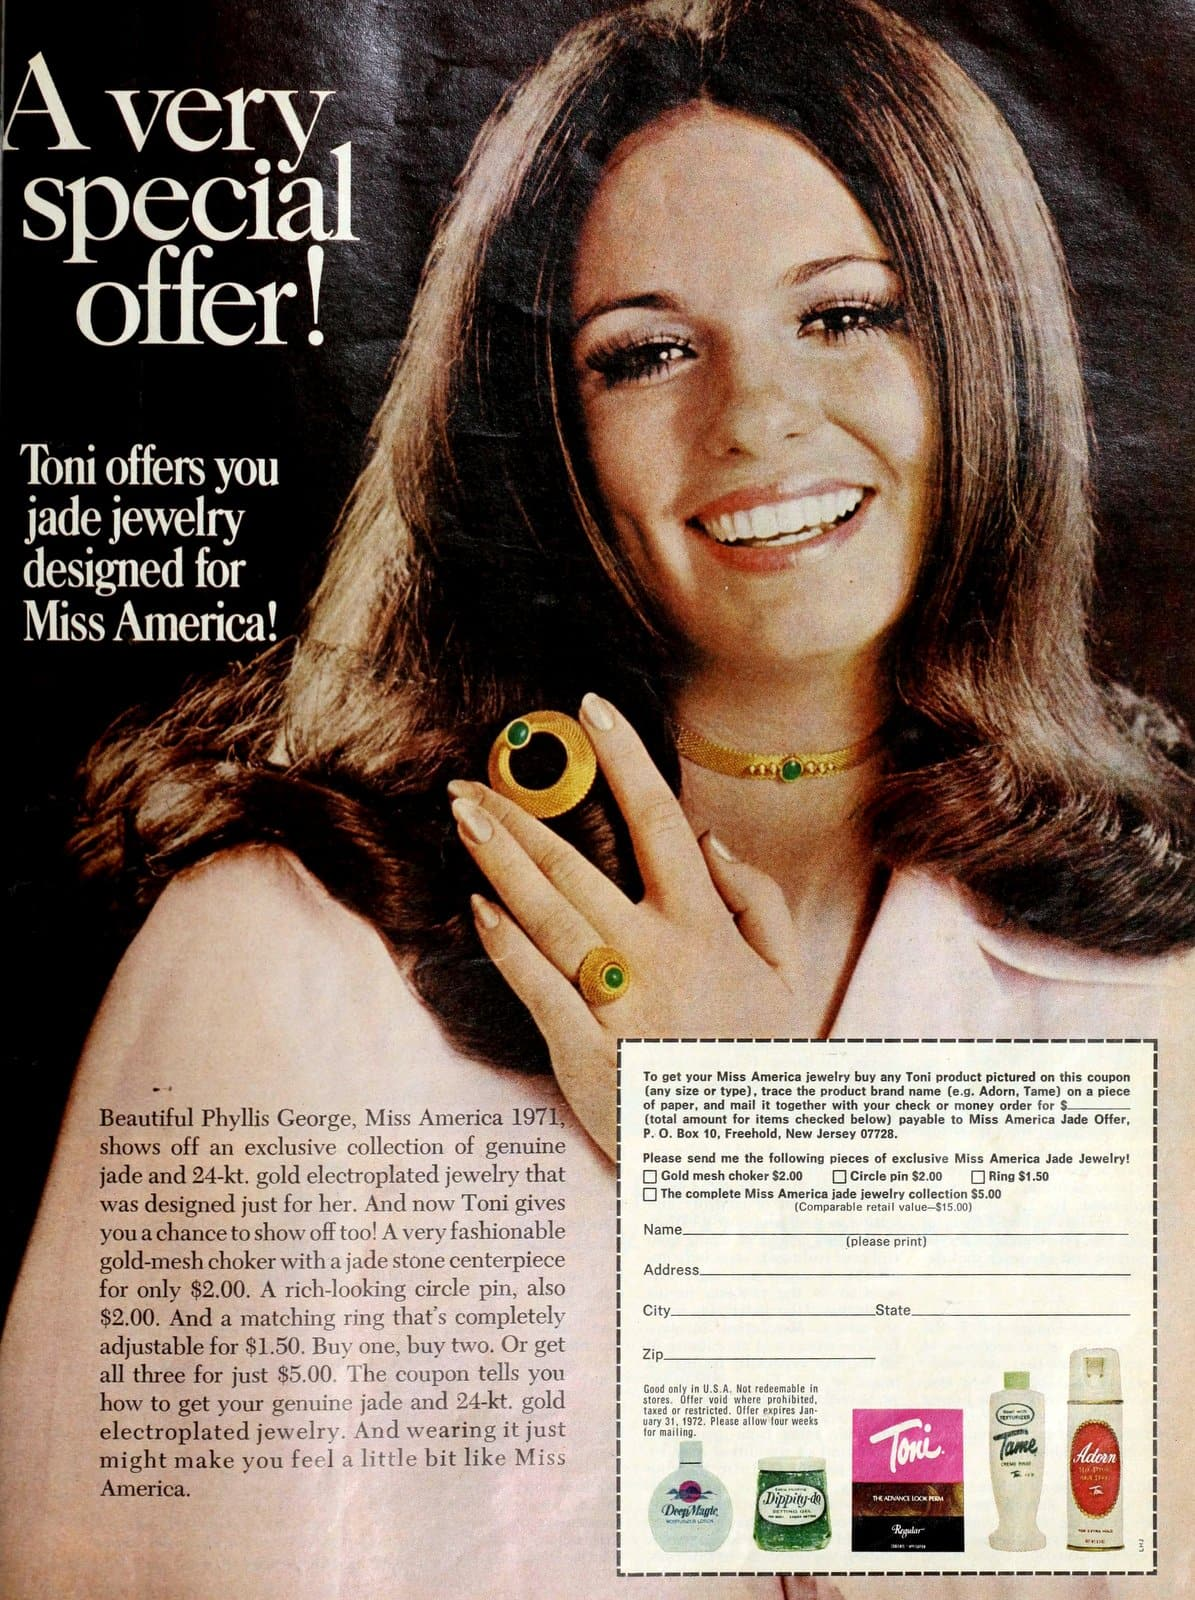 Toni offers you jade jewelry designed for Miss America (1971)